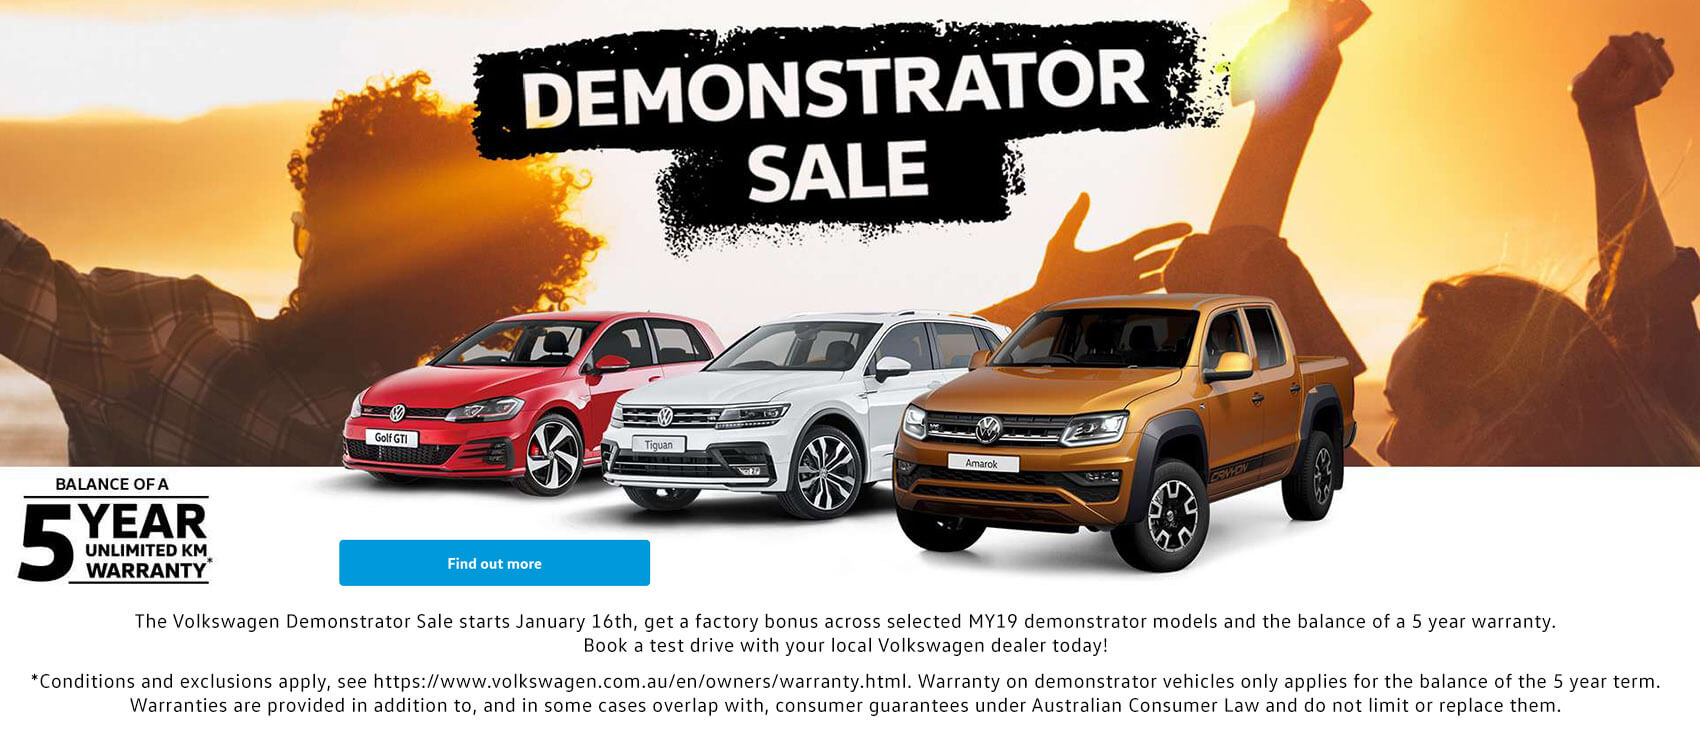 The Volkswagen Demonstrator Sale starts January 16th, get a factory bonus across selected MY19 demonstrator models and the balance of a 5 year warranty. Book a test drive with Woodleys Volkswagen